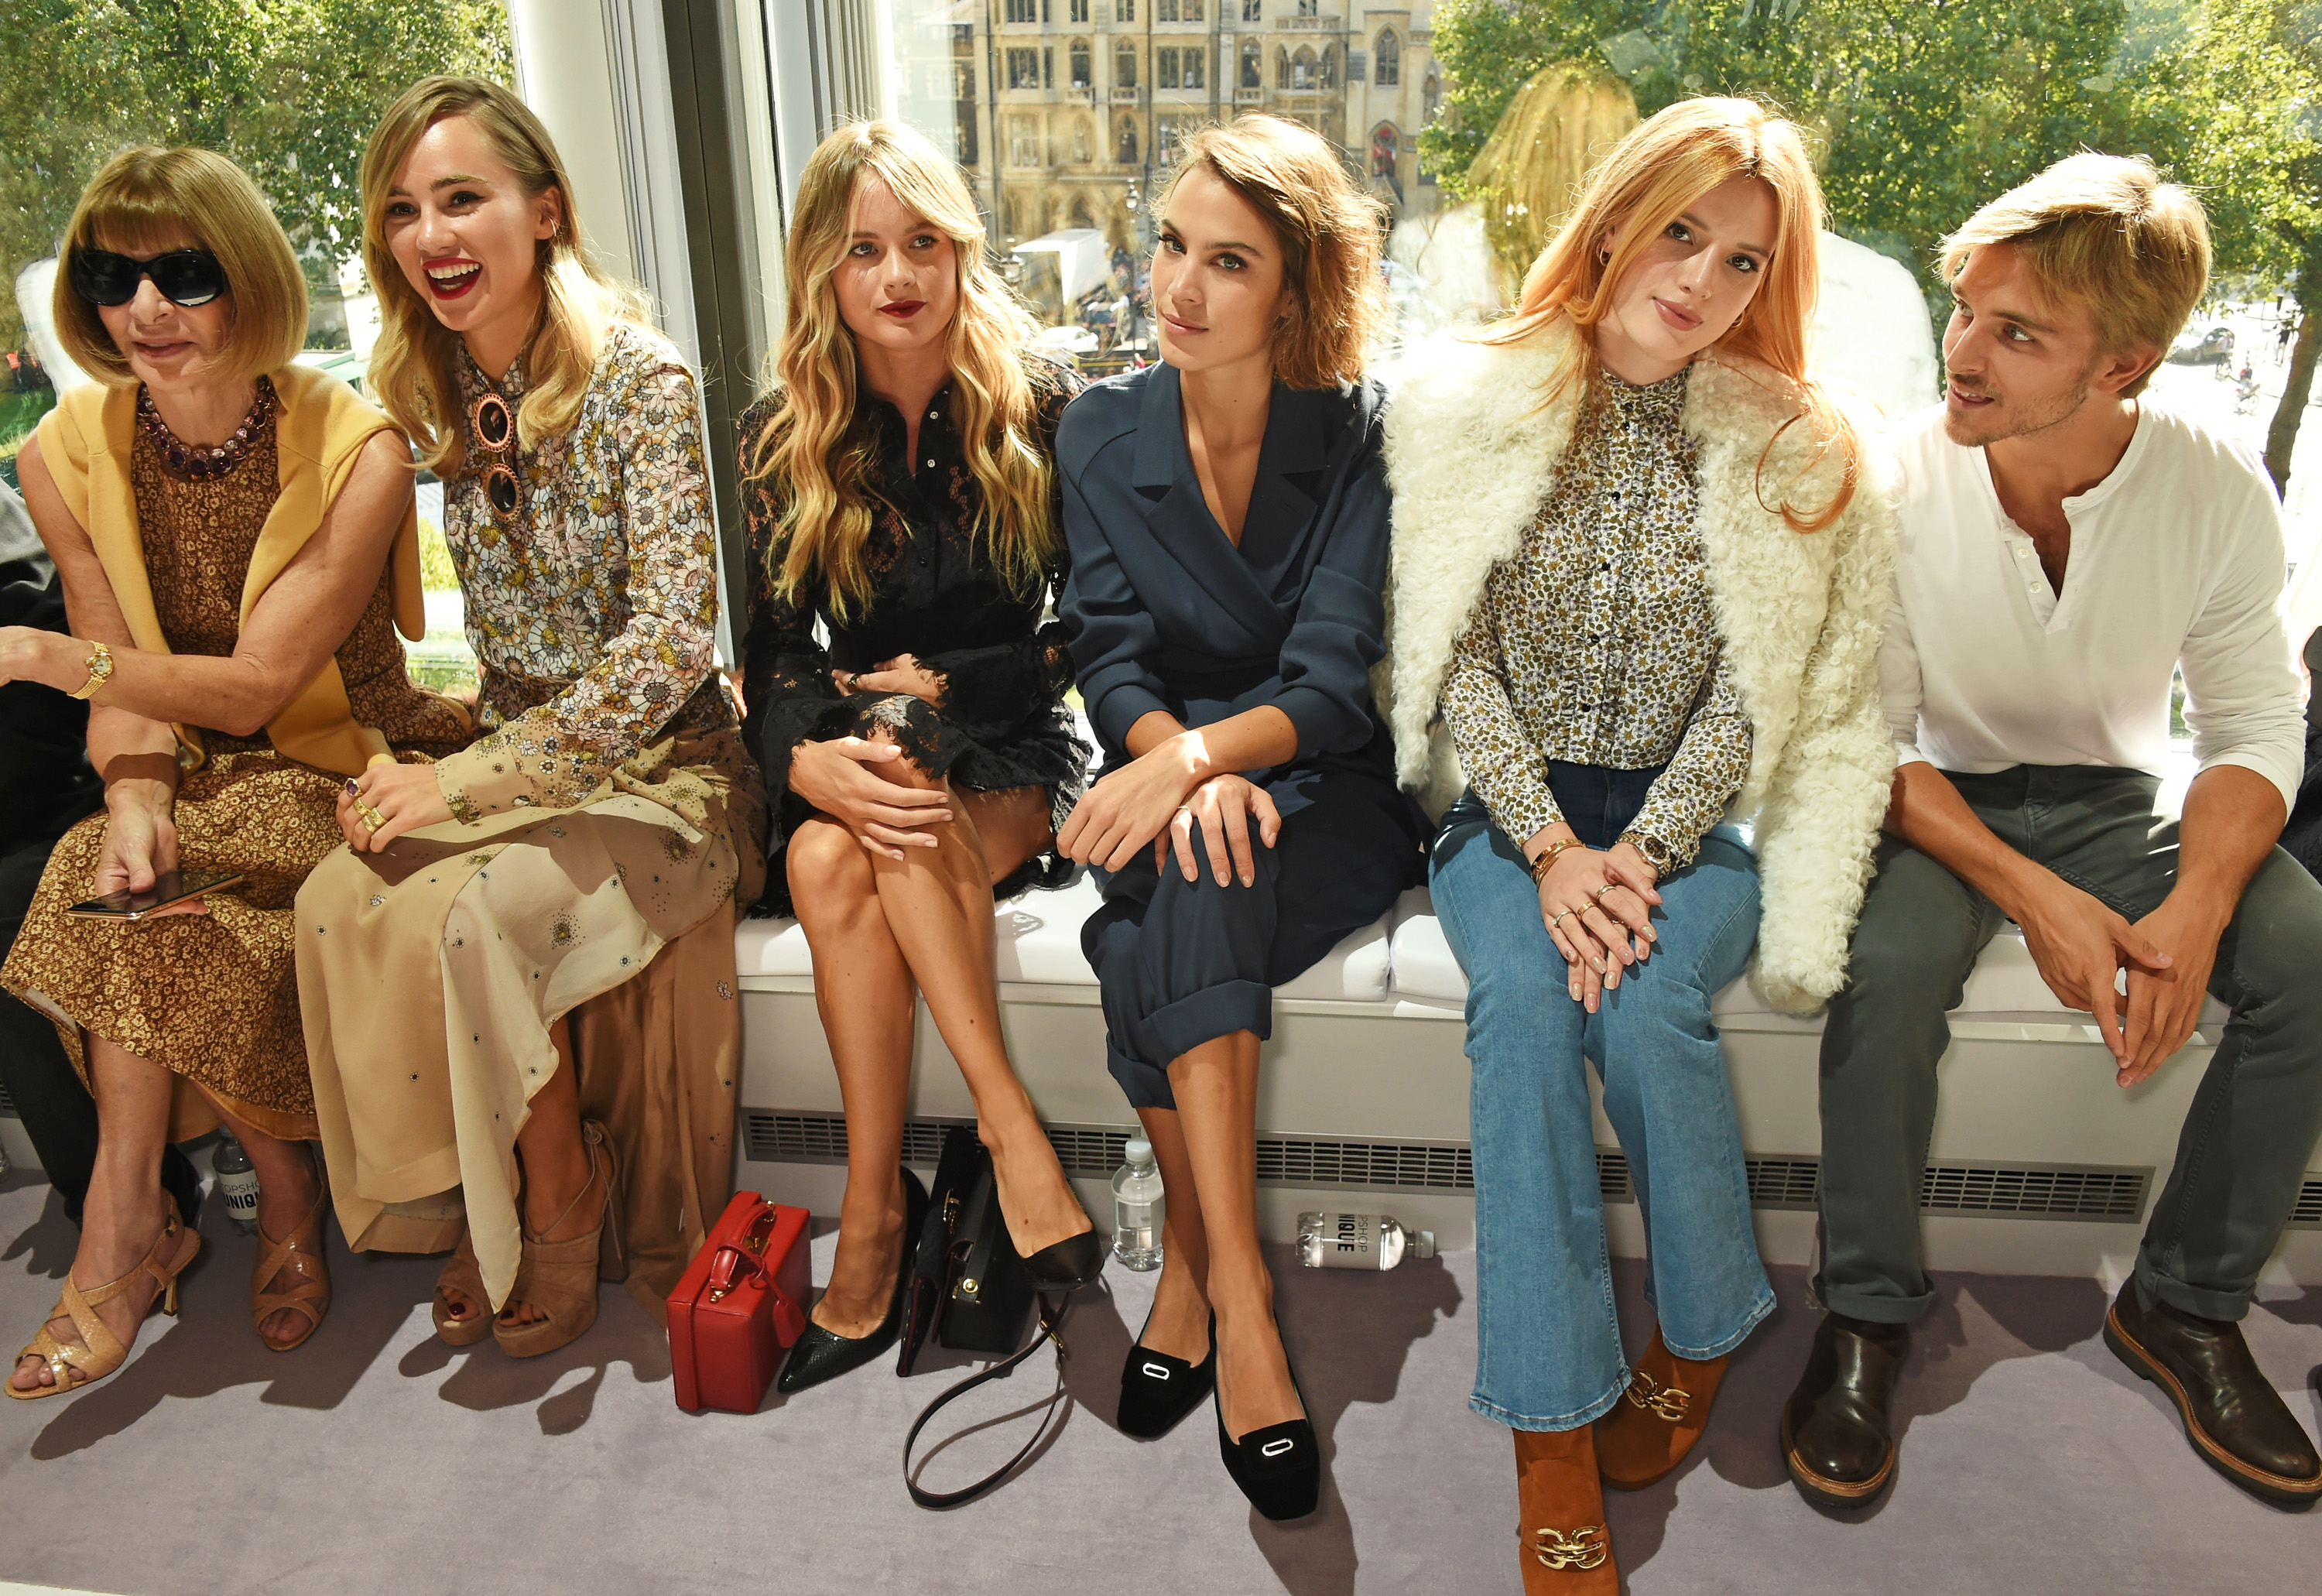 """Being the home of Brit cool, the Topshop Unique runway never fails to attract a swarm of English It girls. From Suki Waterhouse to Alexa Chung this front row rivals<a href=""""http://honey.ninemsn.com.au/2015/09/17/07/43/backstage-at-yeezy-by-kayne-west"""" target=""""_blank"""">Kanye's when it comes to style powerhouses</a>."""